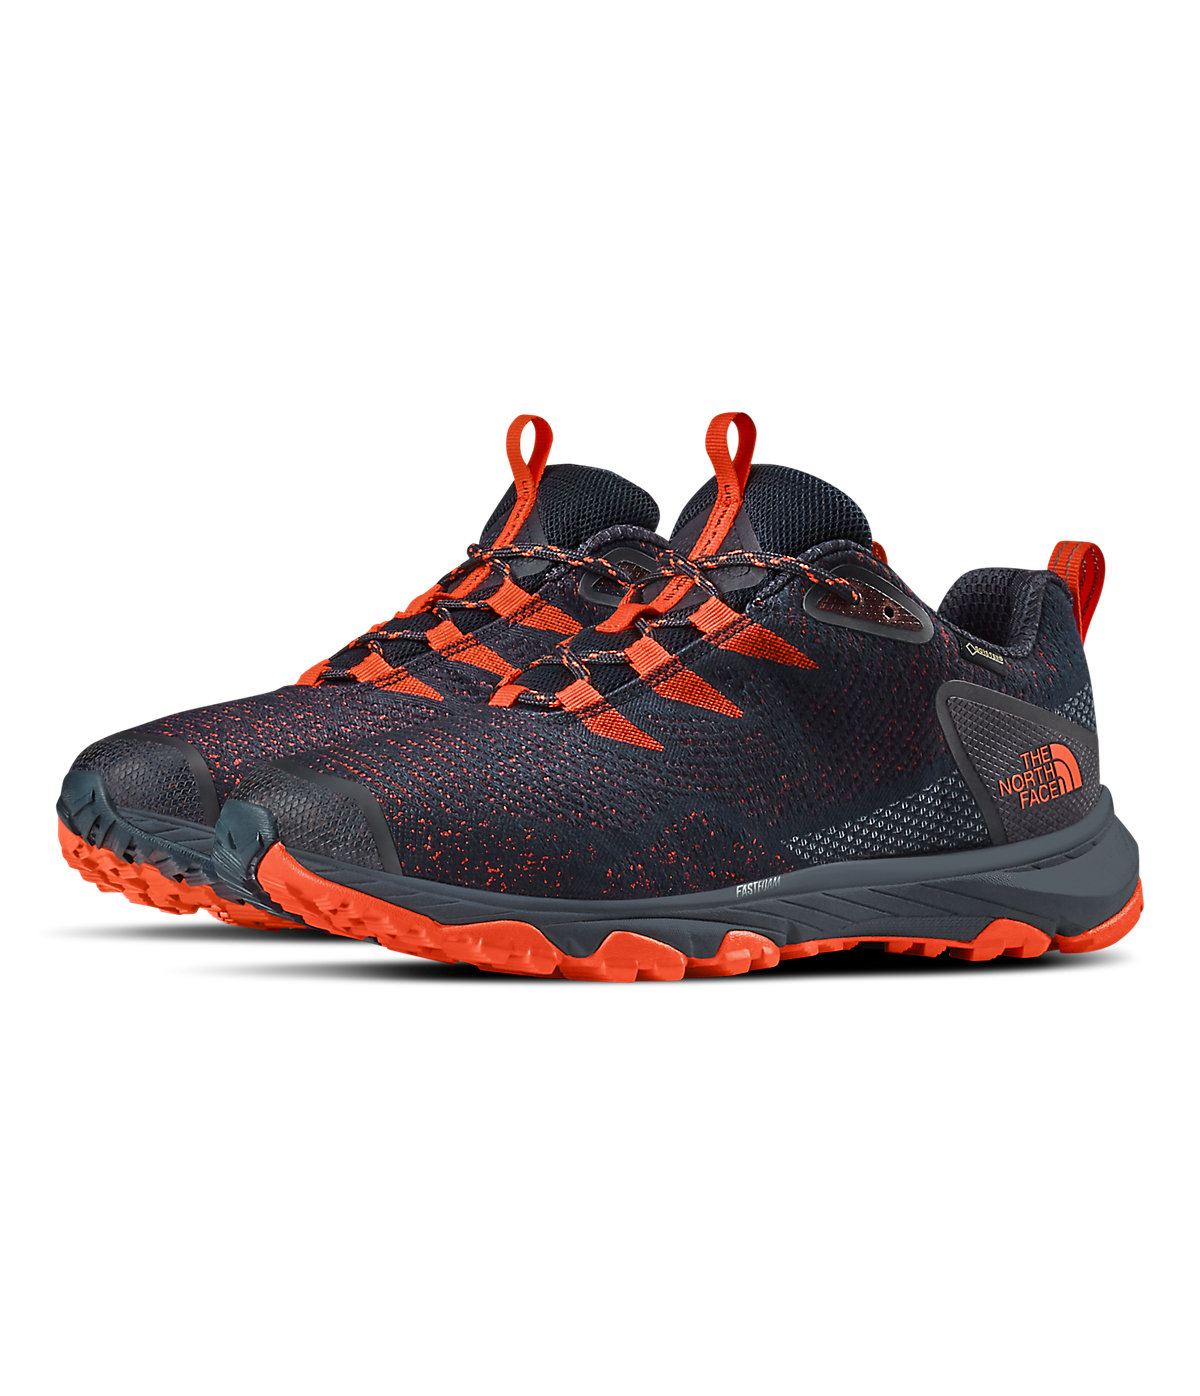 a089a453421 The North Face Men's Ultra Fastpack III GTX Woven in 2019 | Products ...